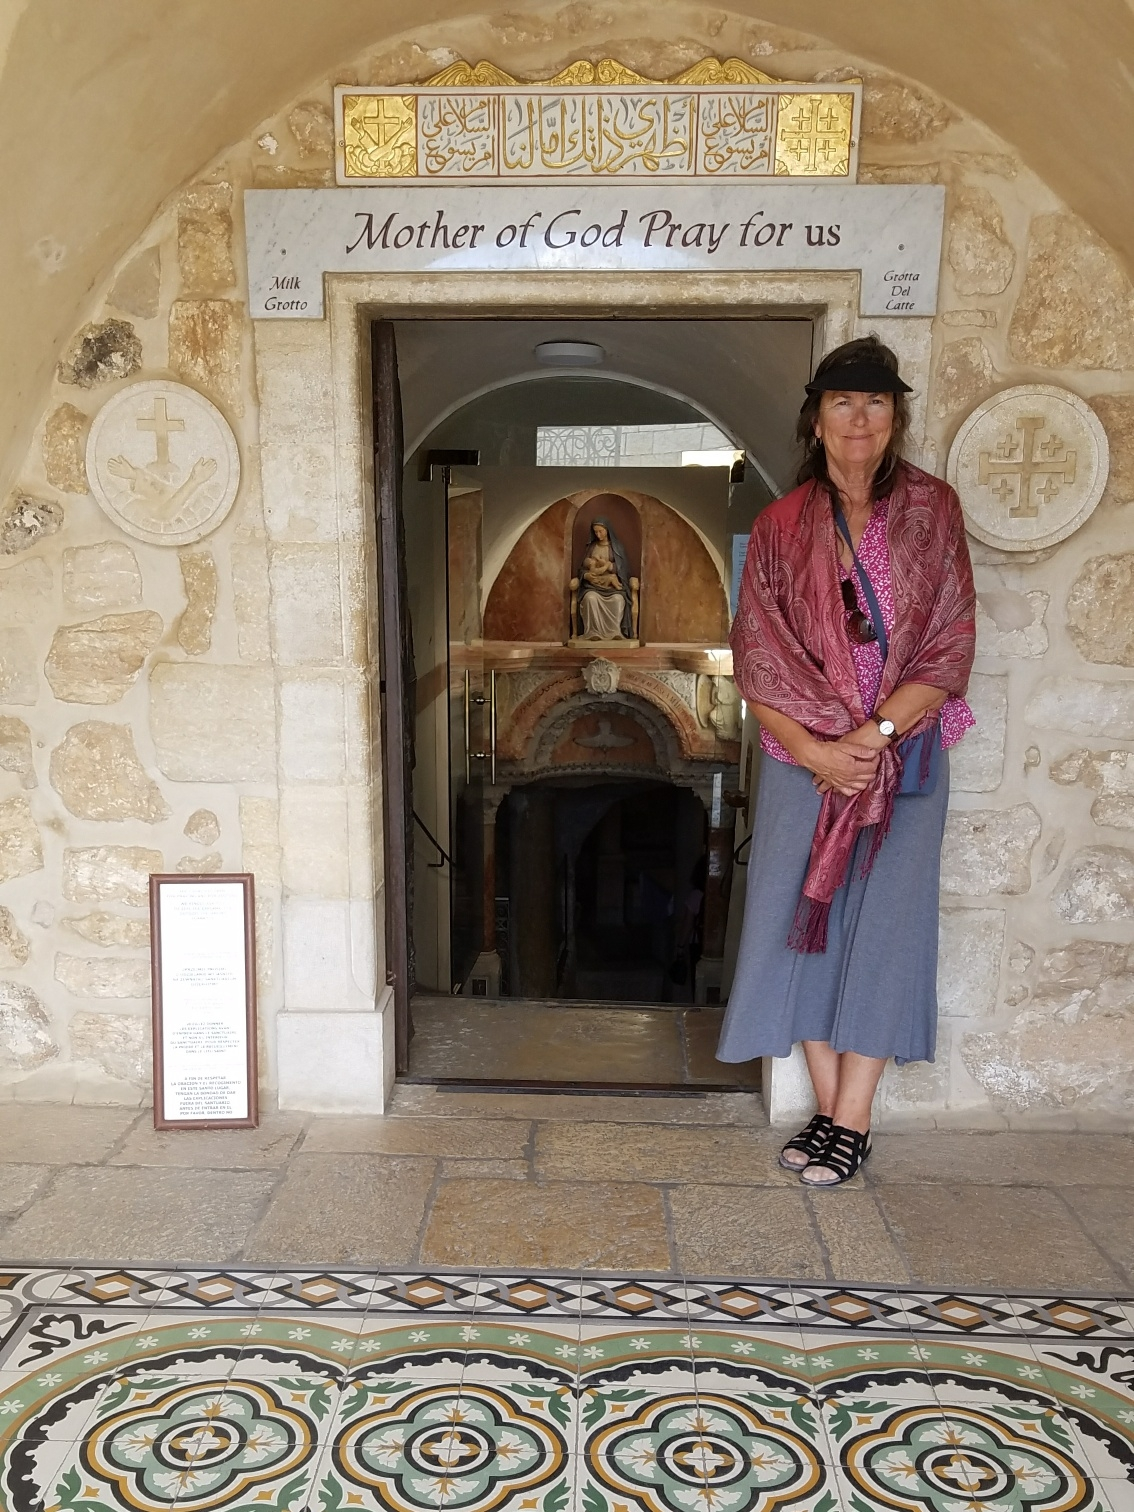 Bethlehem June 2018: A kind of spiritual roots trip